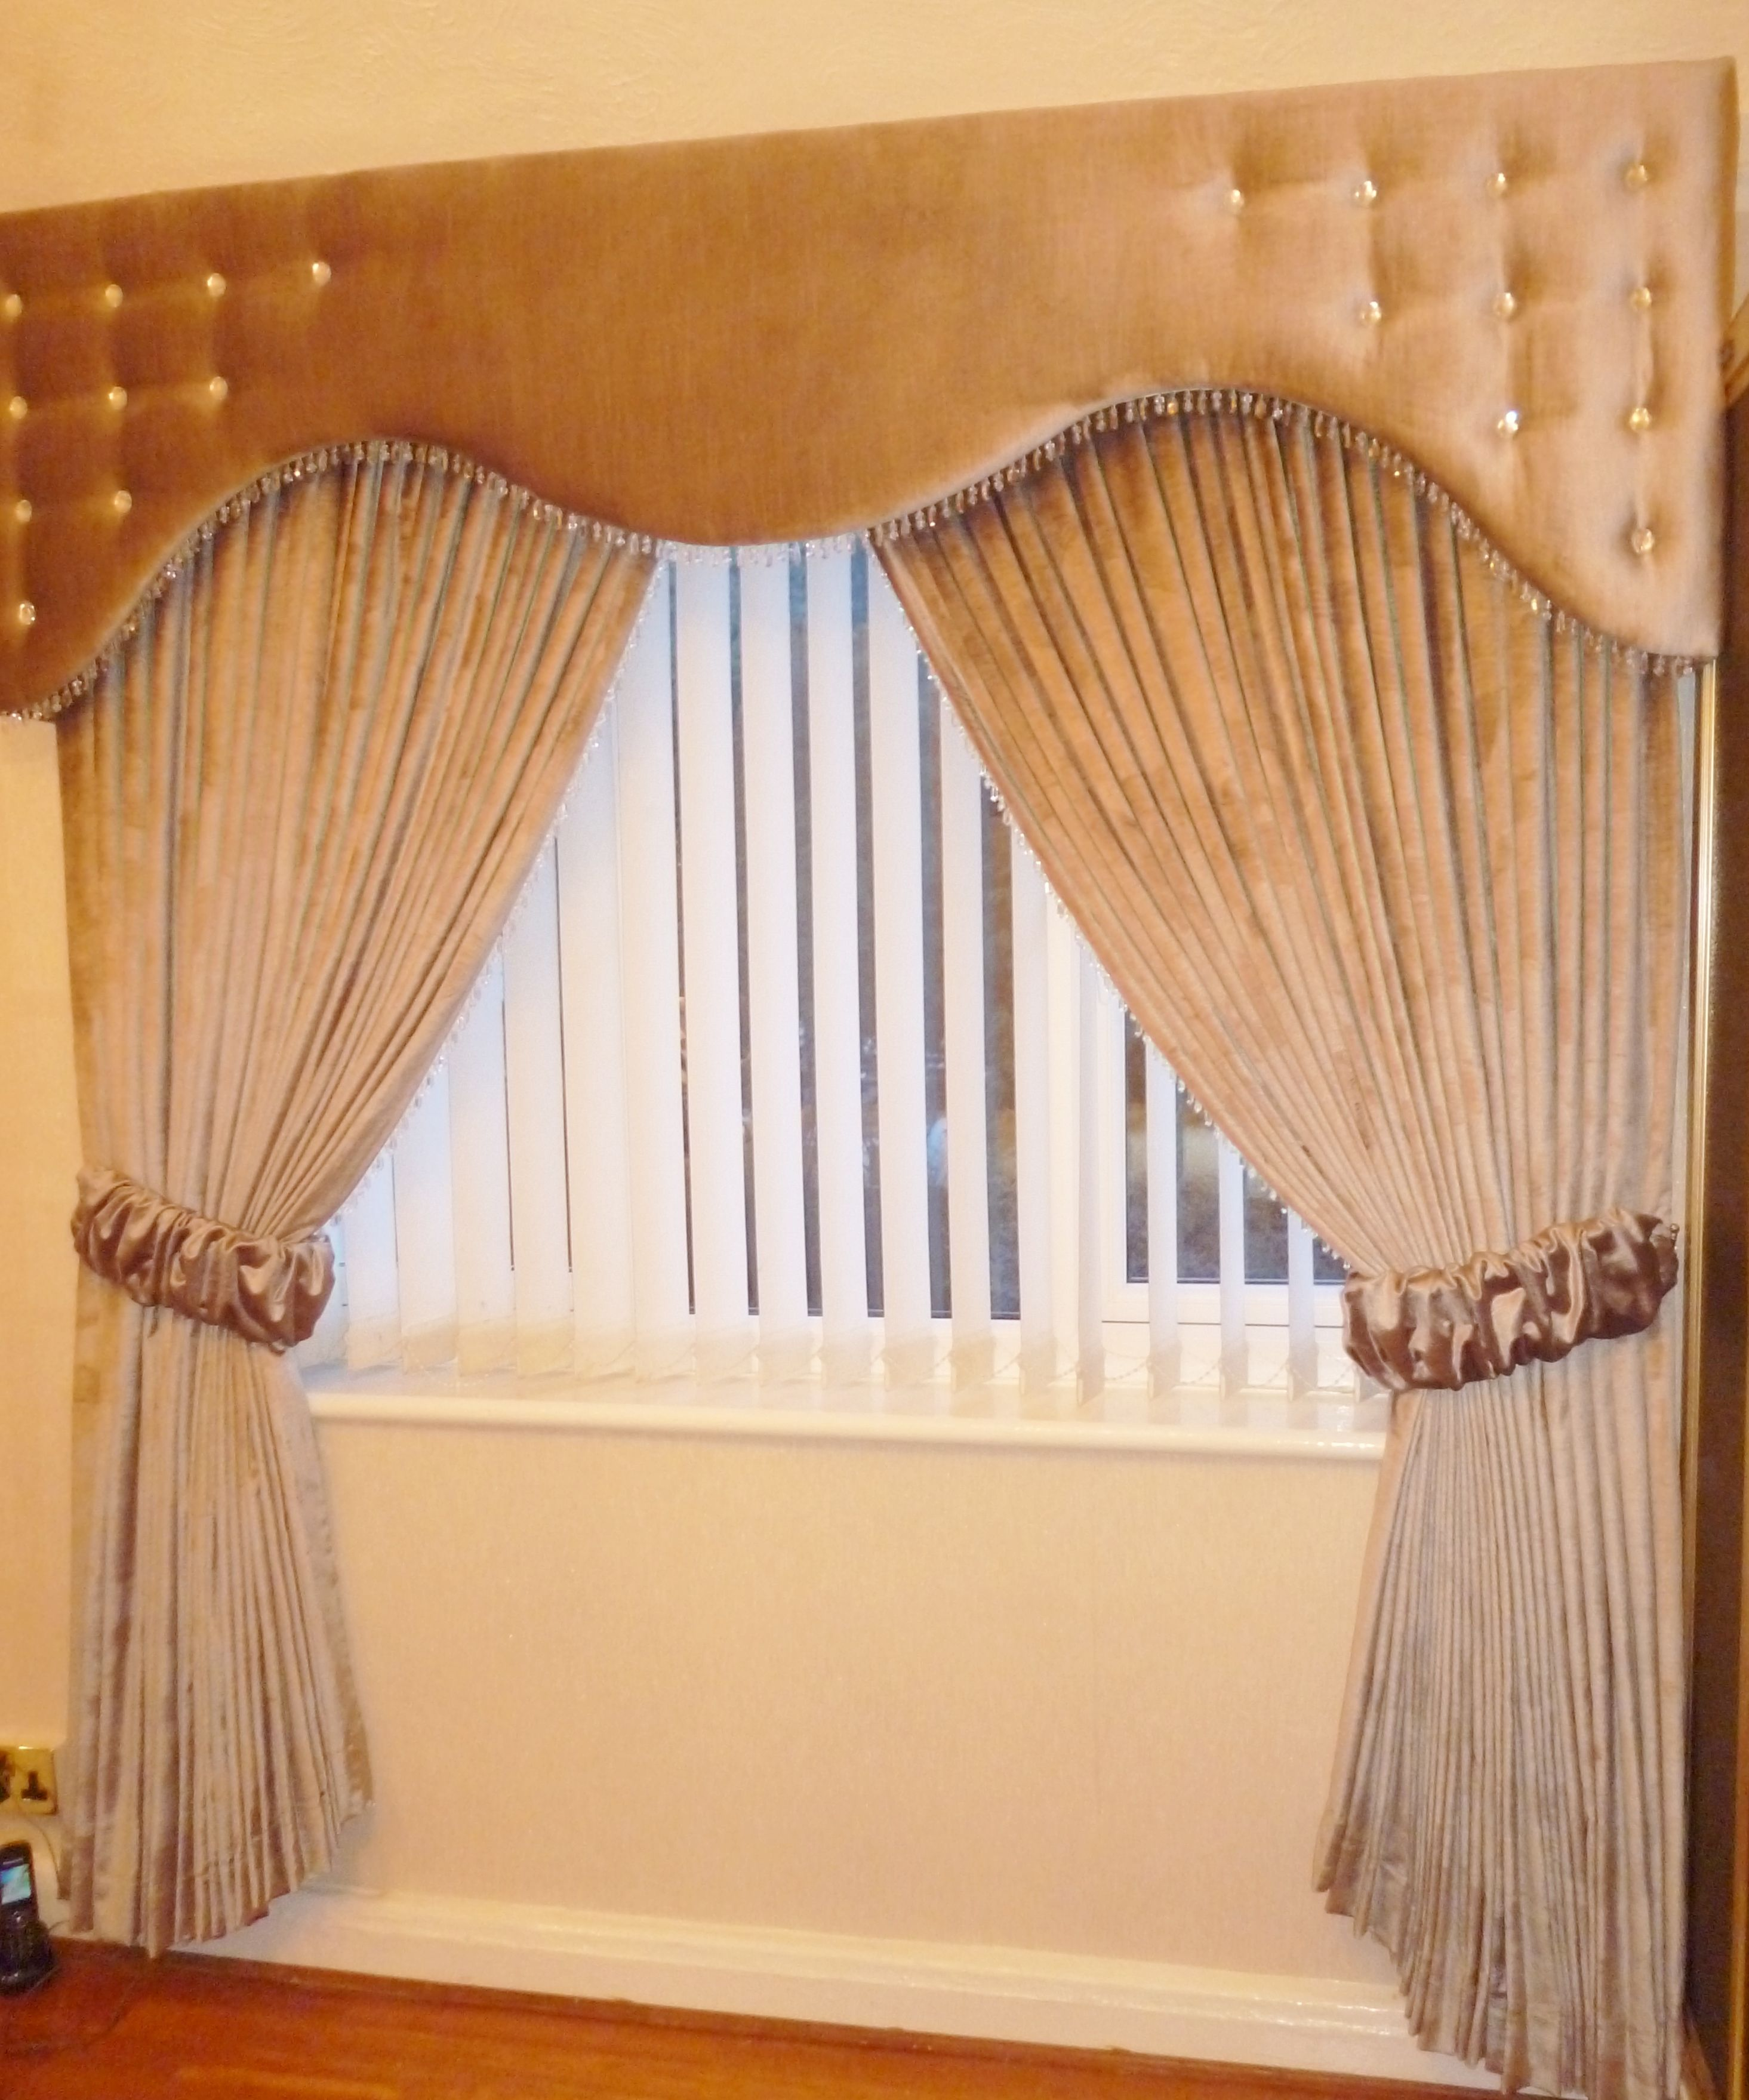 Curtain Pelmets Ideas: Velvet Shaped Pelmet And Curtains